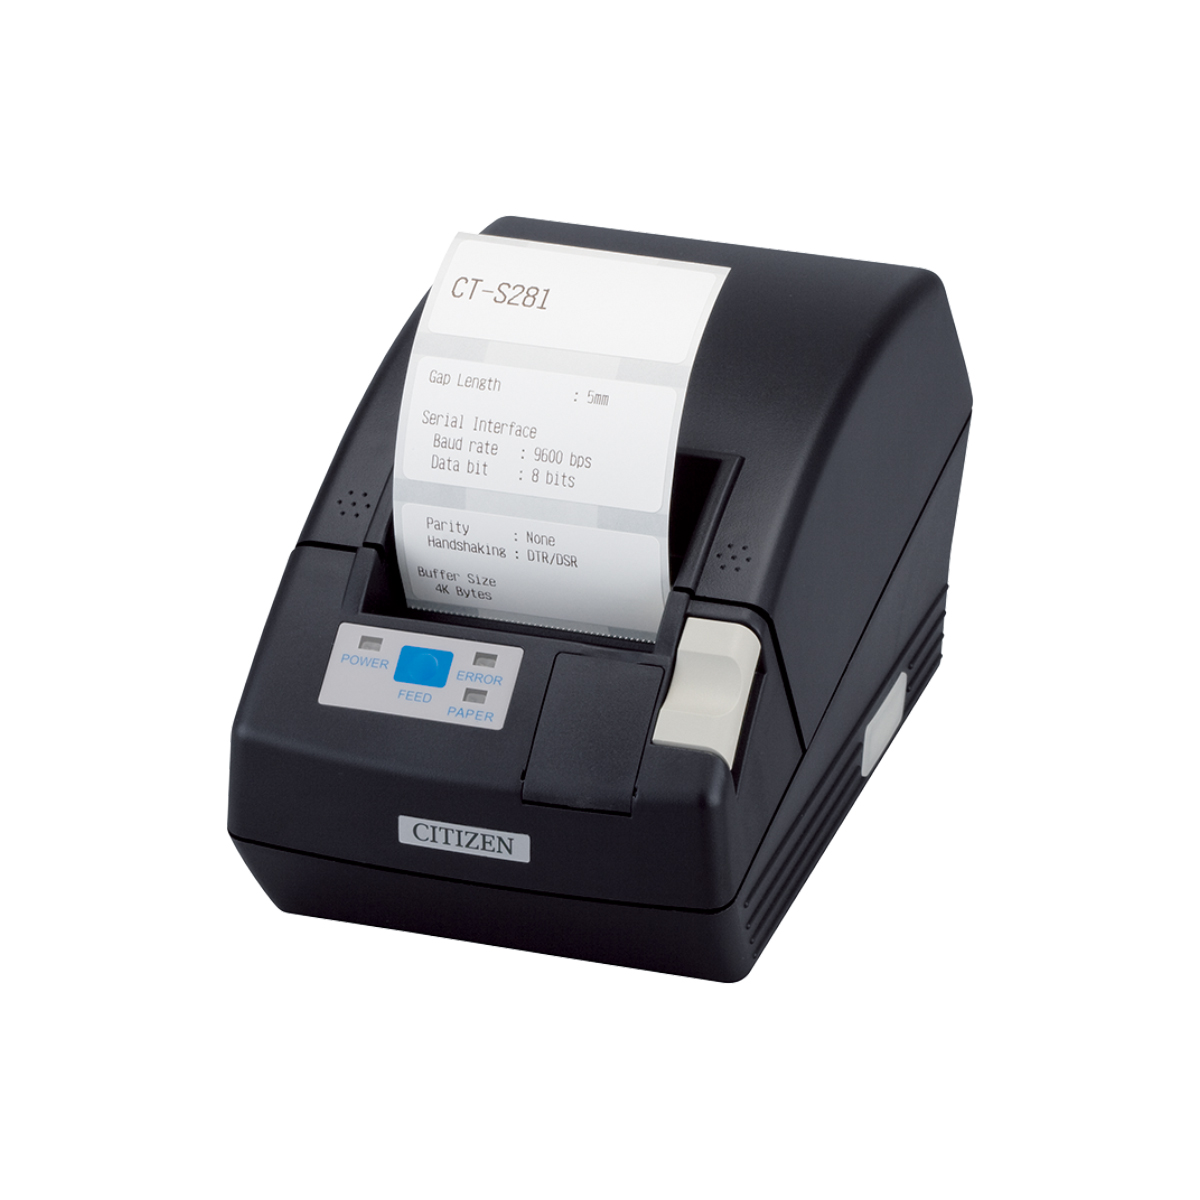 Citizen CT S281 Thermal Printers